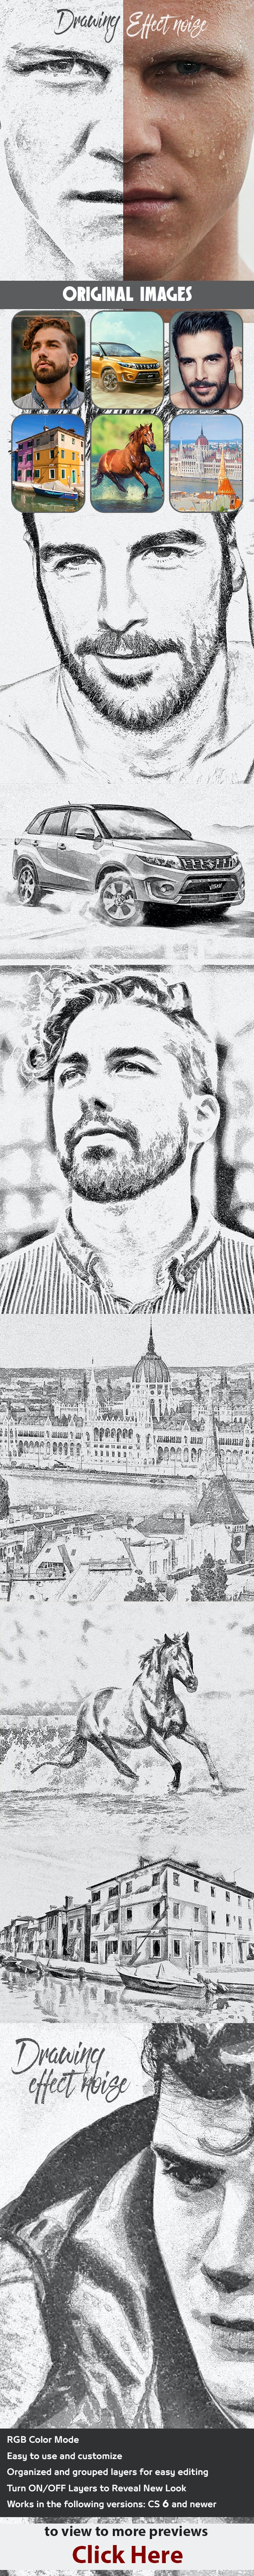 Drawing Effect Noise - Actions Photoshop